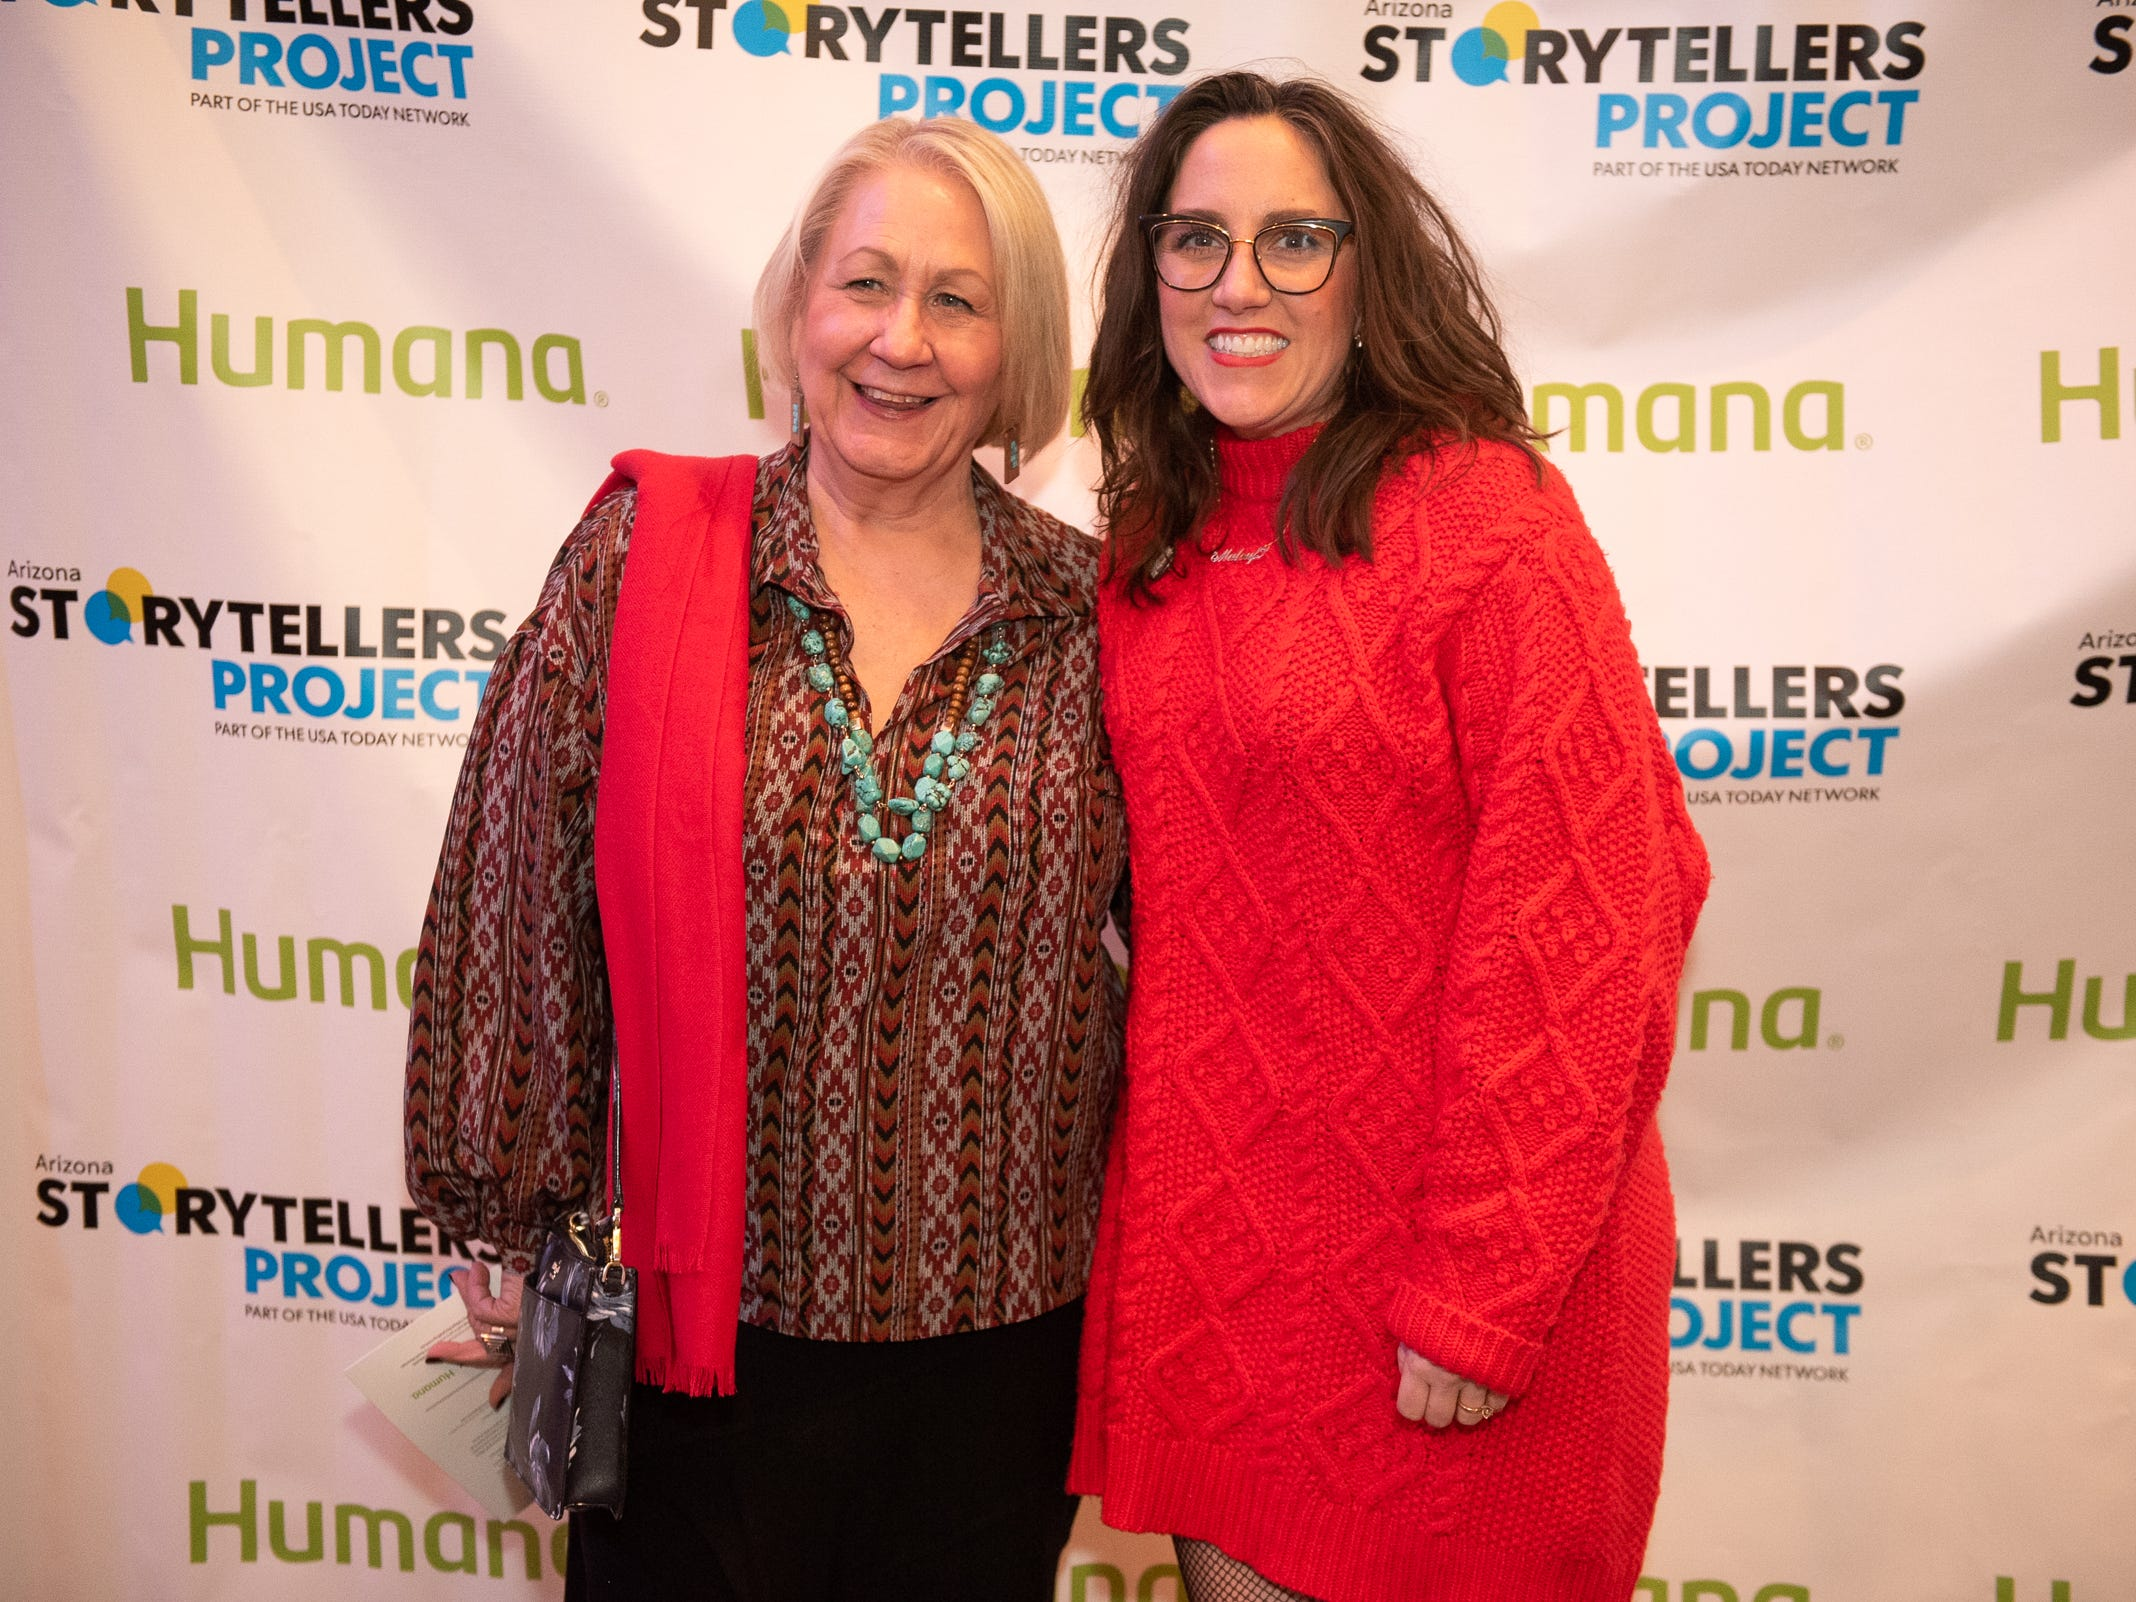 """Liz Warren and Megan Finnerty strike a pose at the Humana/Storytellers Project step and repeat during """"Arizona Storytellers: Romance or Not"""" at the Scottsdale Center for Performing Arts on Wednesday, Feb. 13, 2019."""